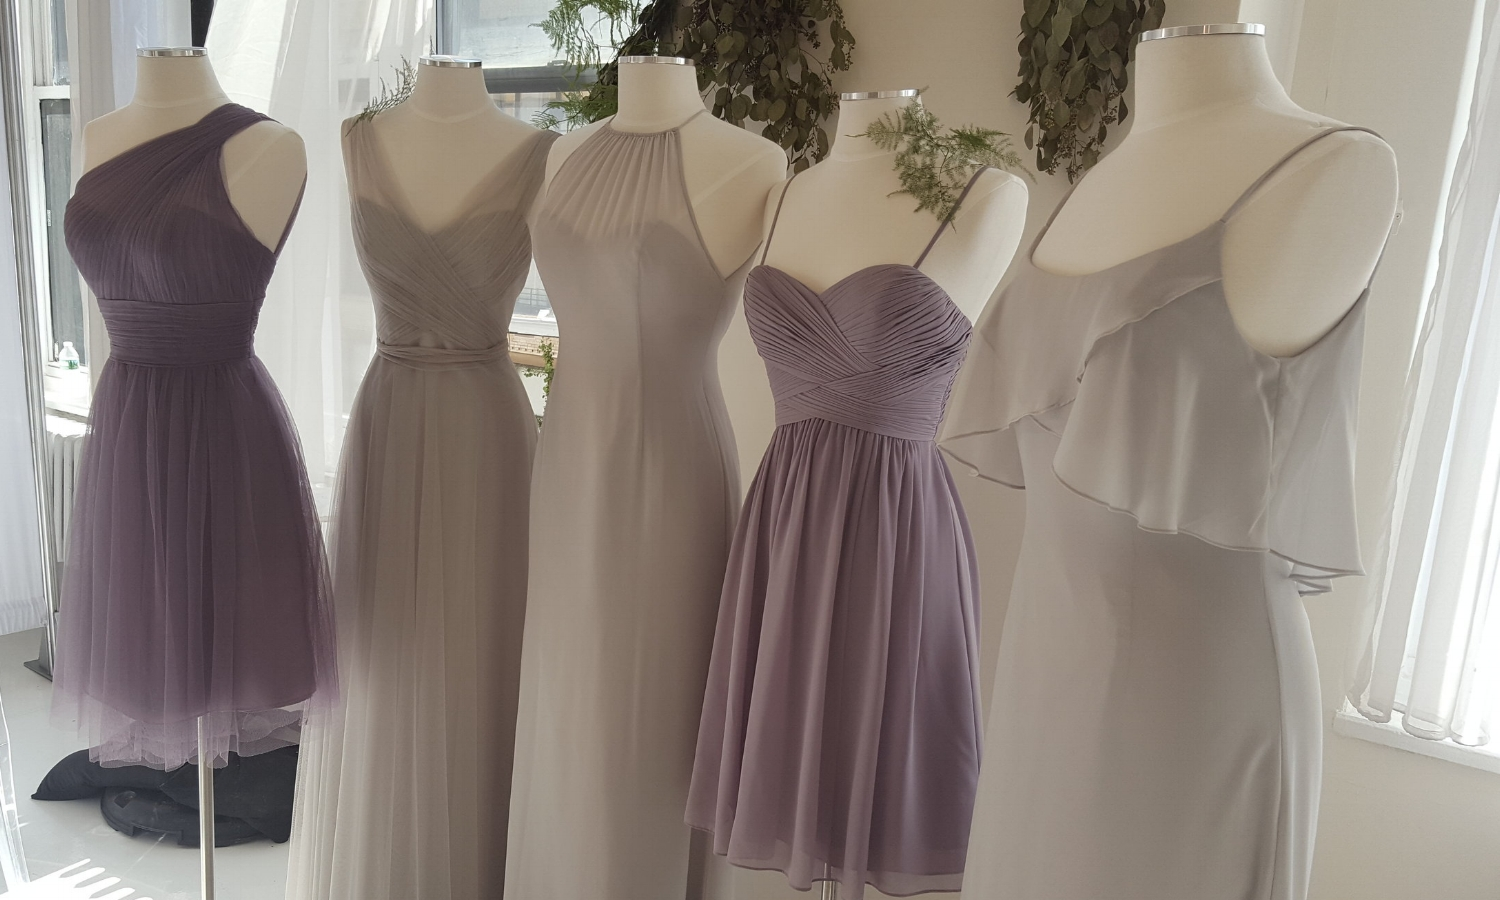 Wtoo  was a favorite of mine. Their soflty tailored bodice designs are gorgeous and flattering.